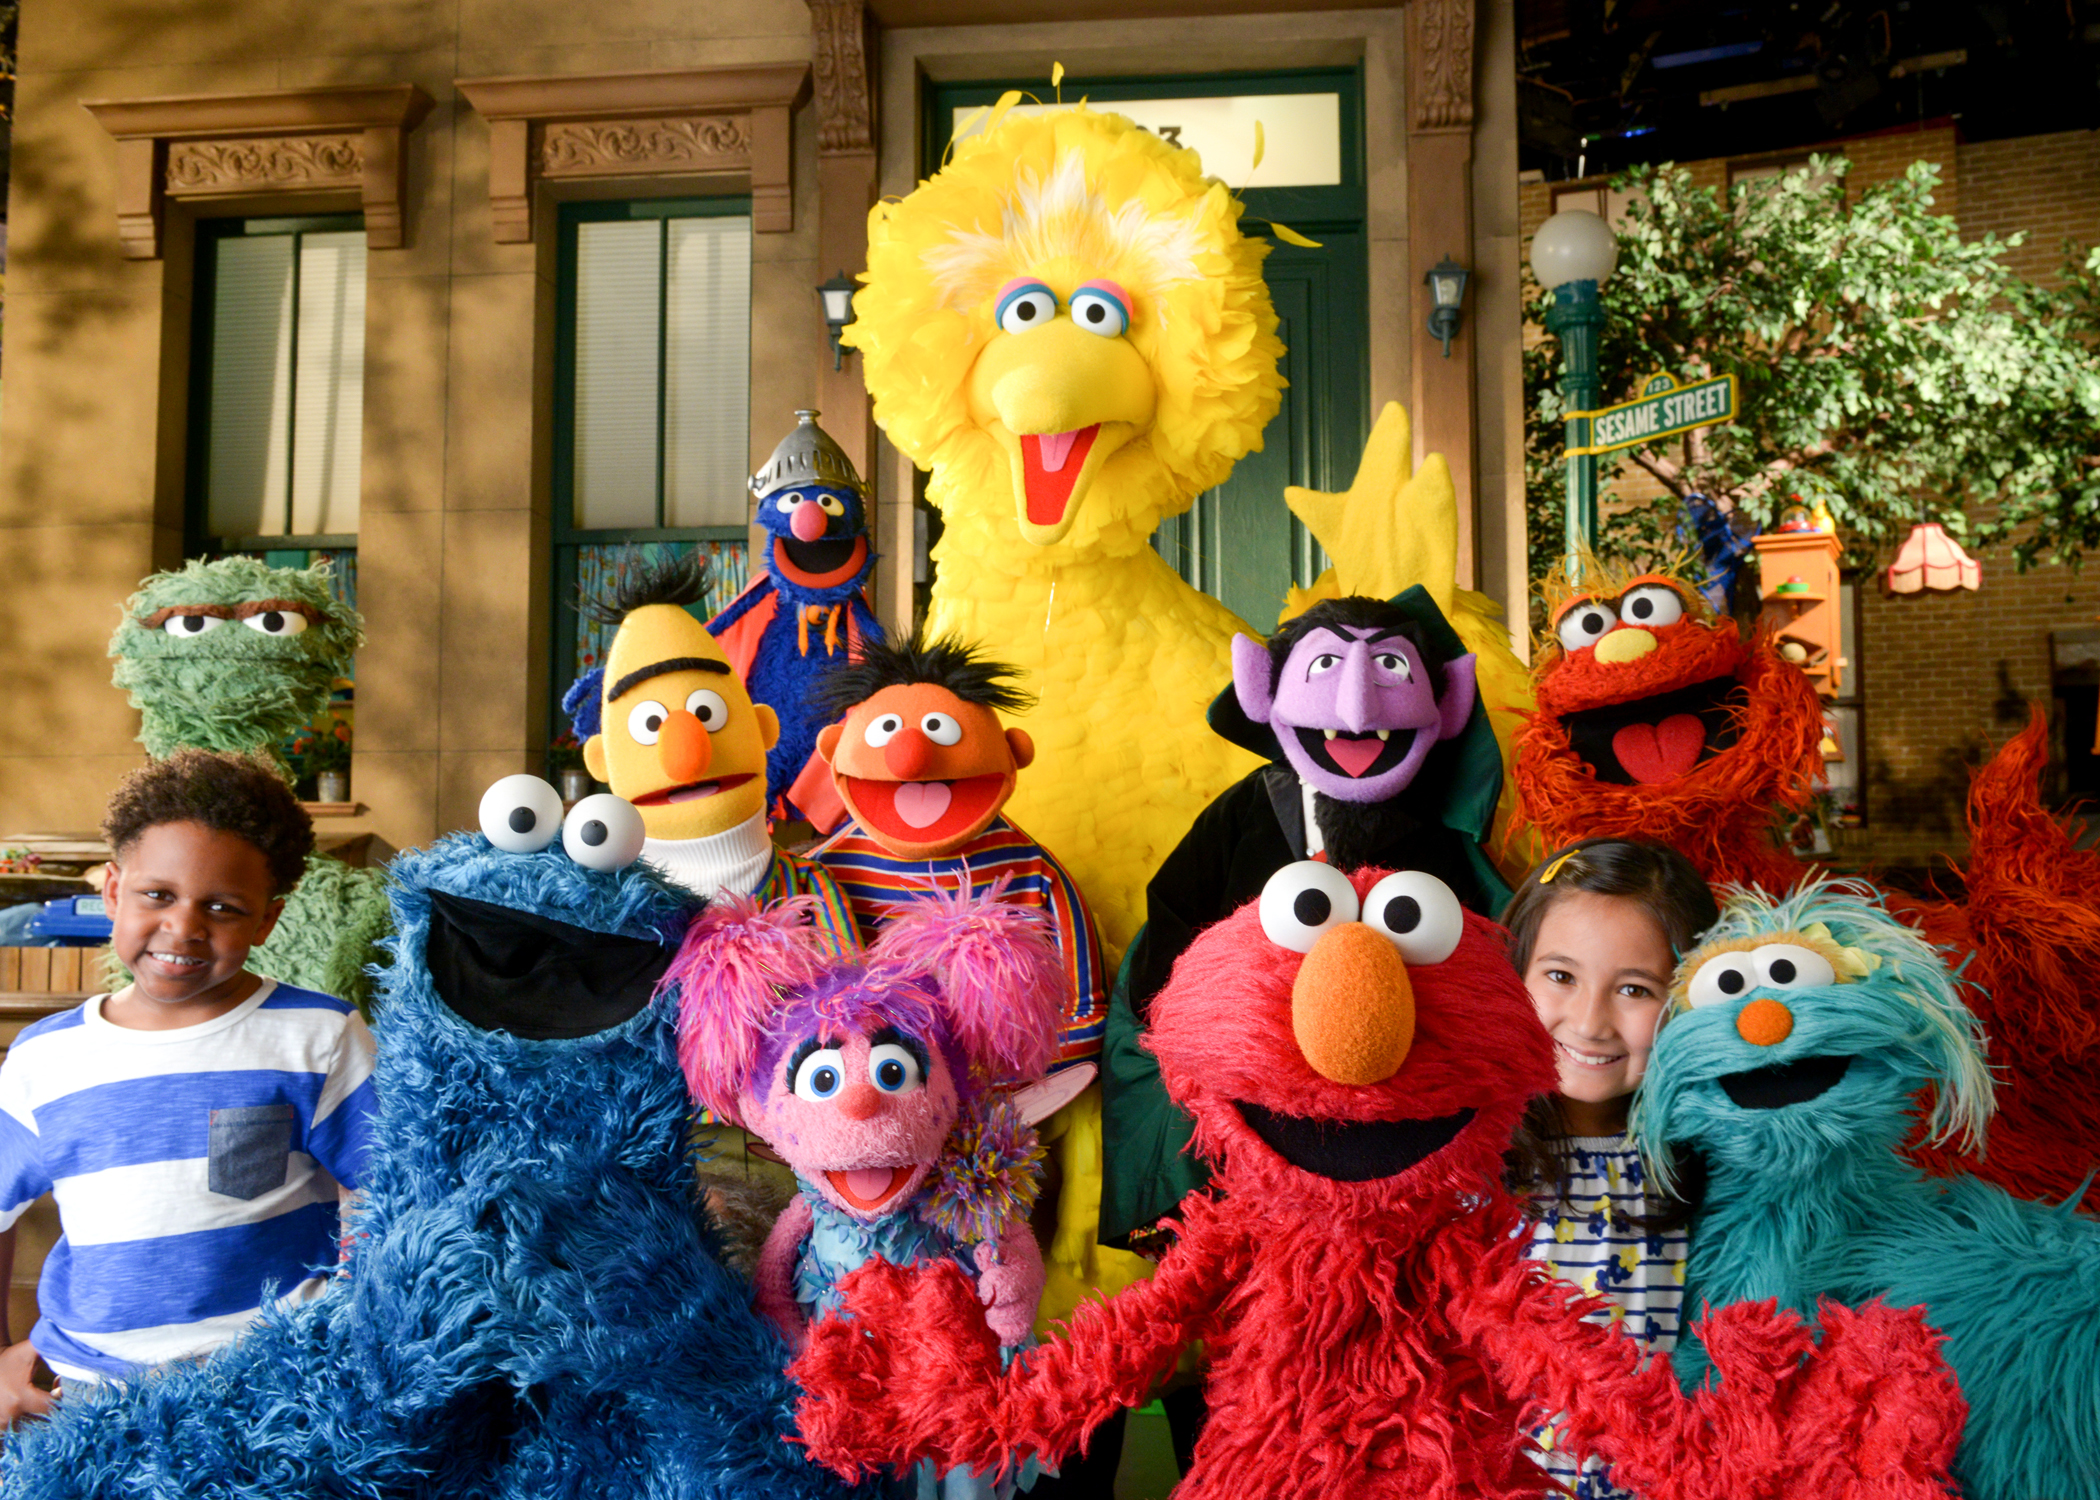 'L' is for 'layoff' — longtime human cast members won't be back on HBO's Sesame Street